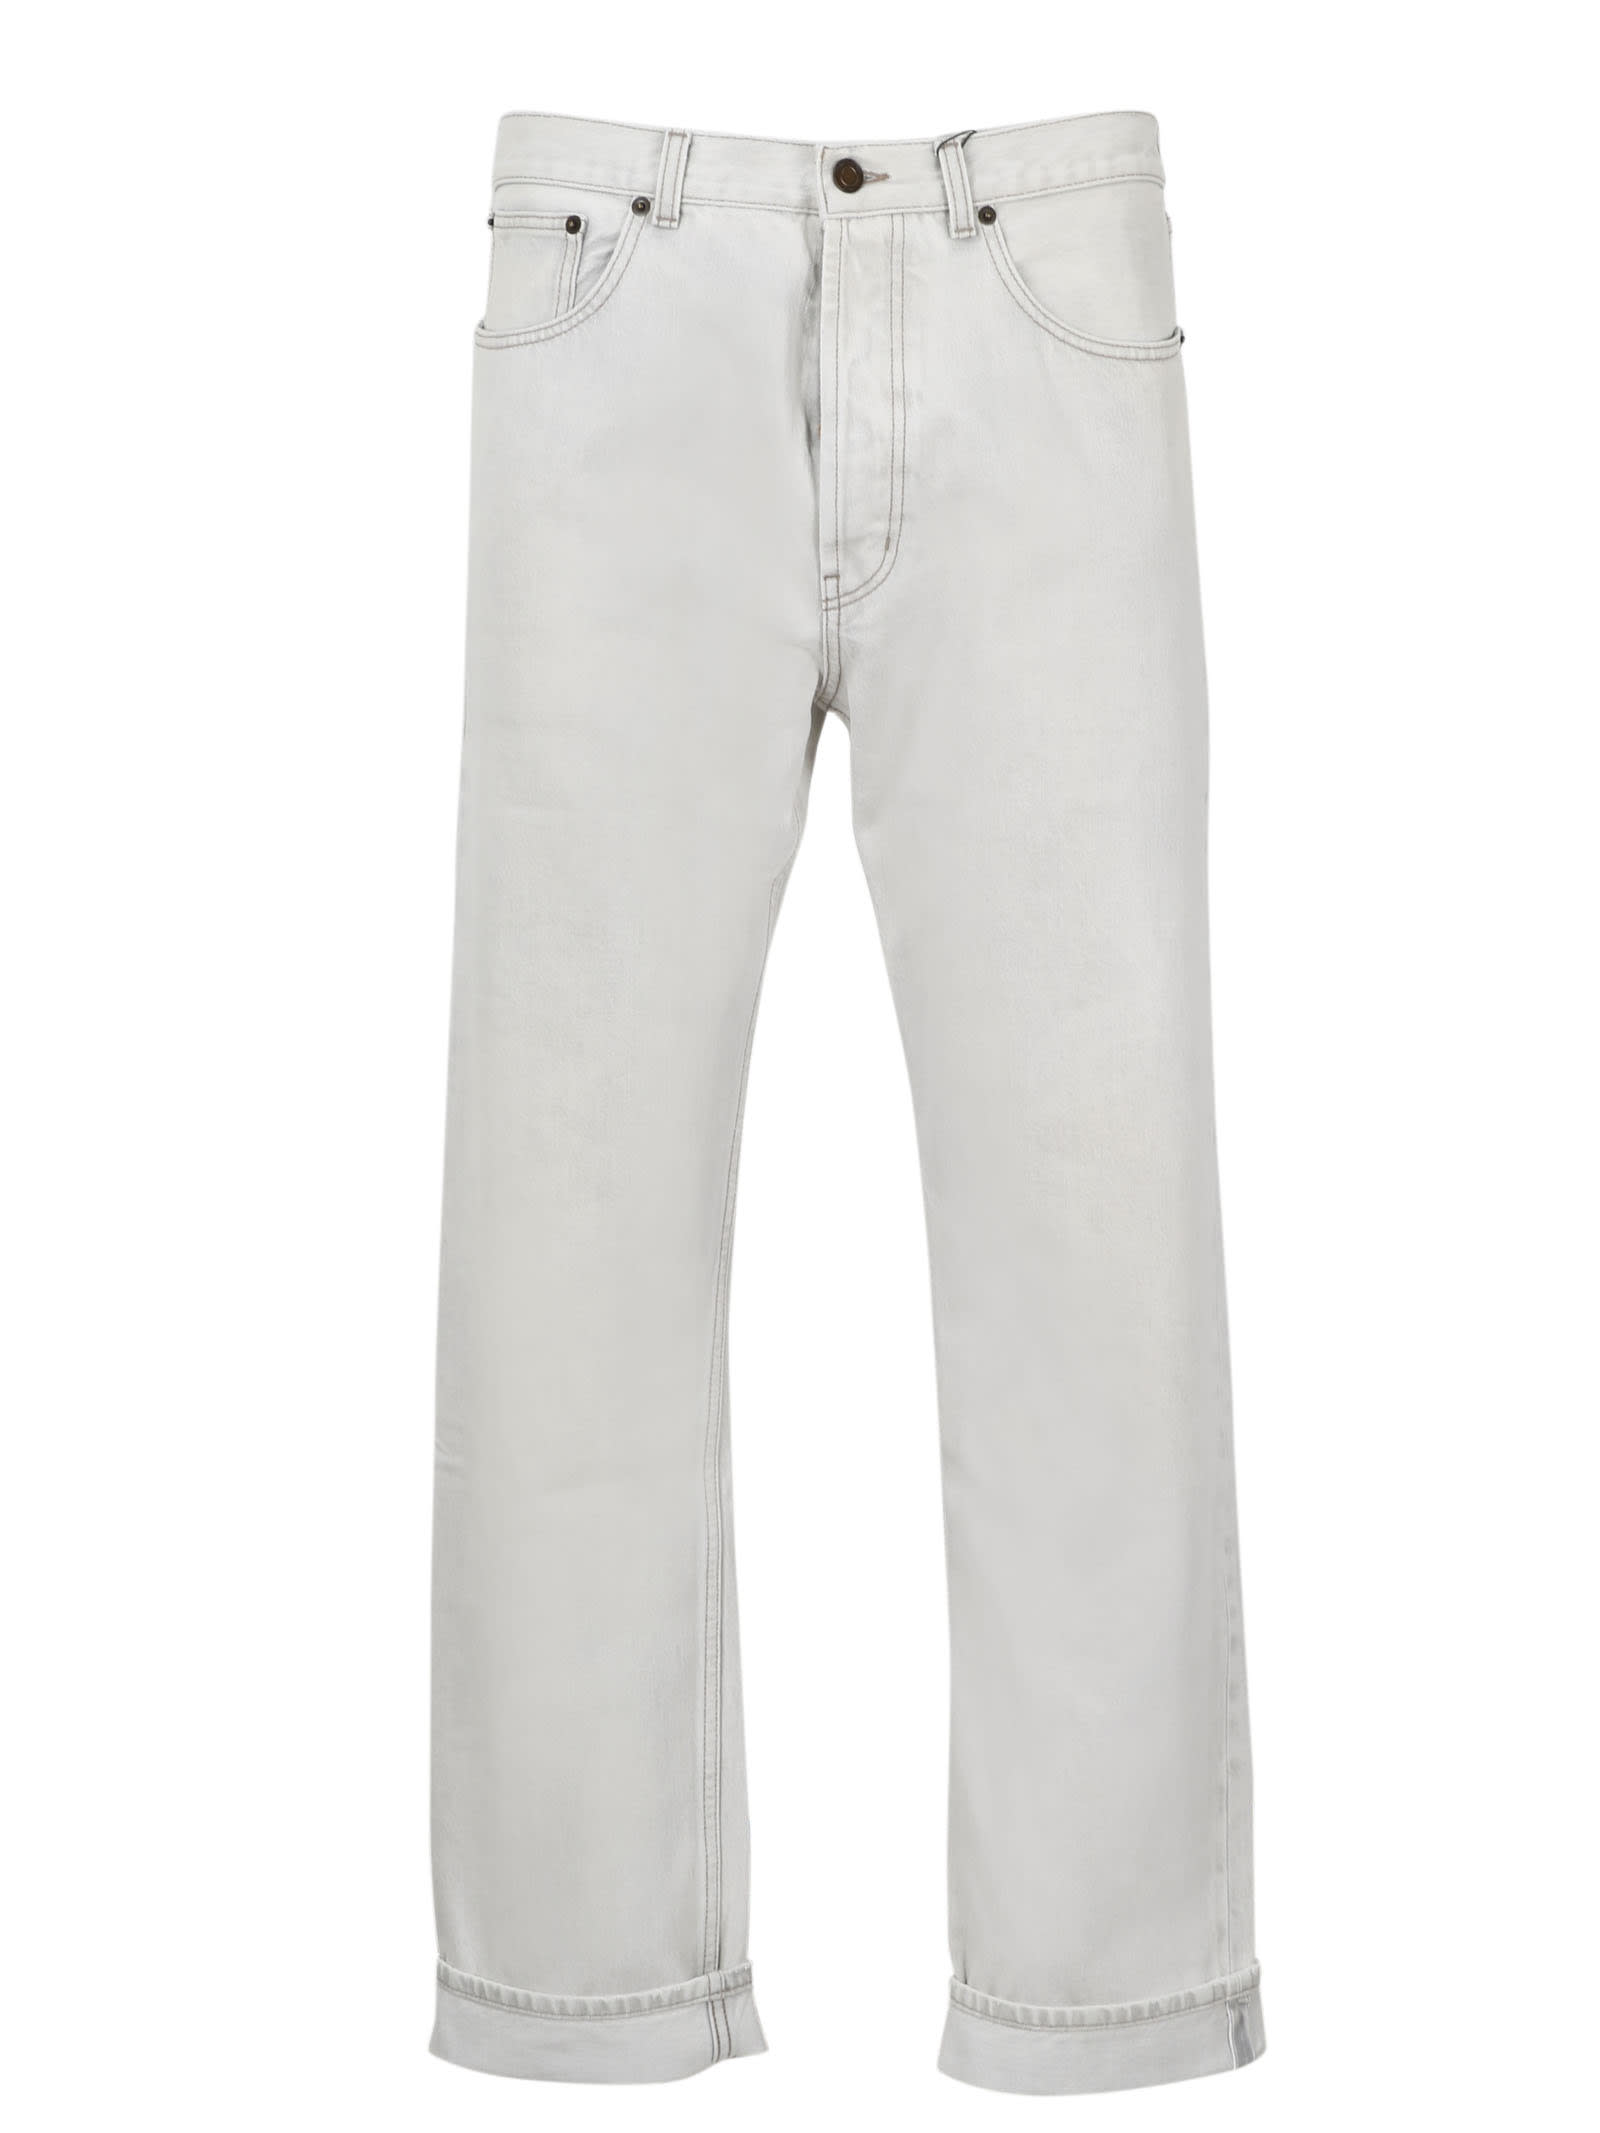 Saint Laurent Relaxed Straight Jeans